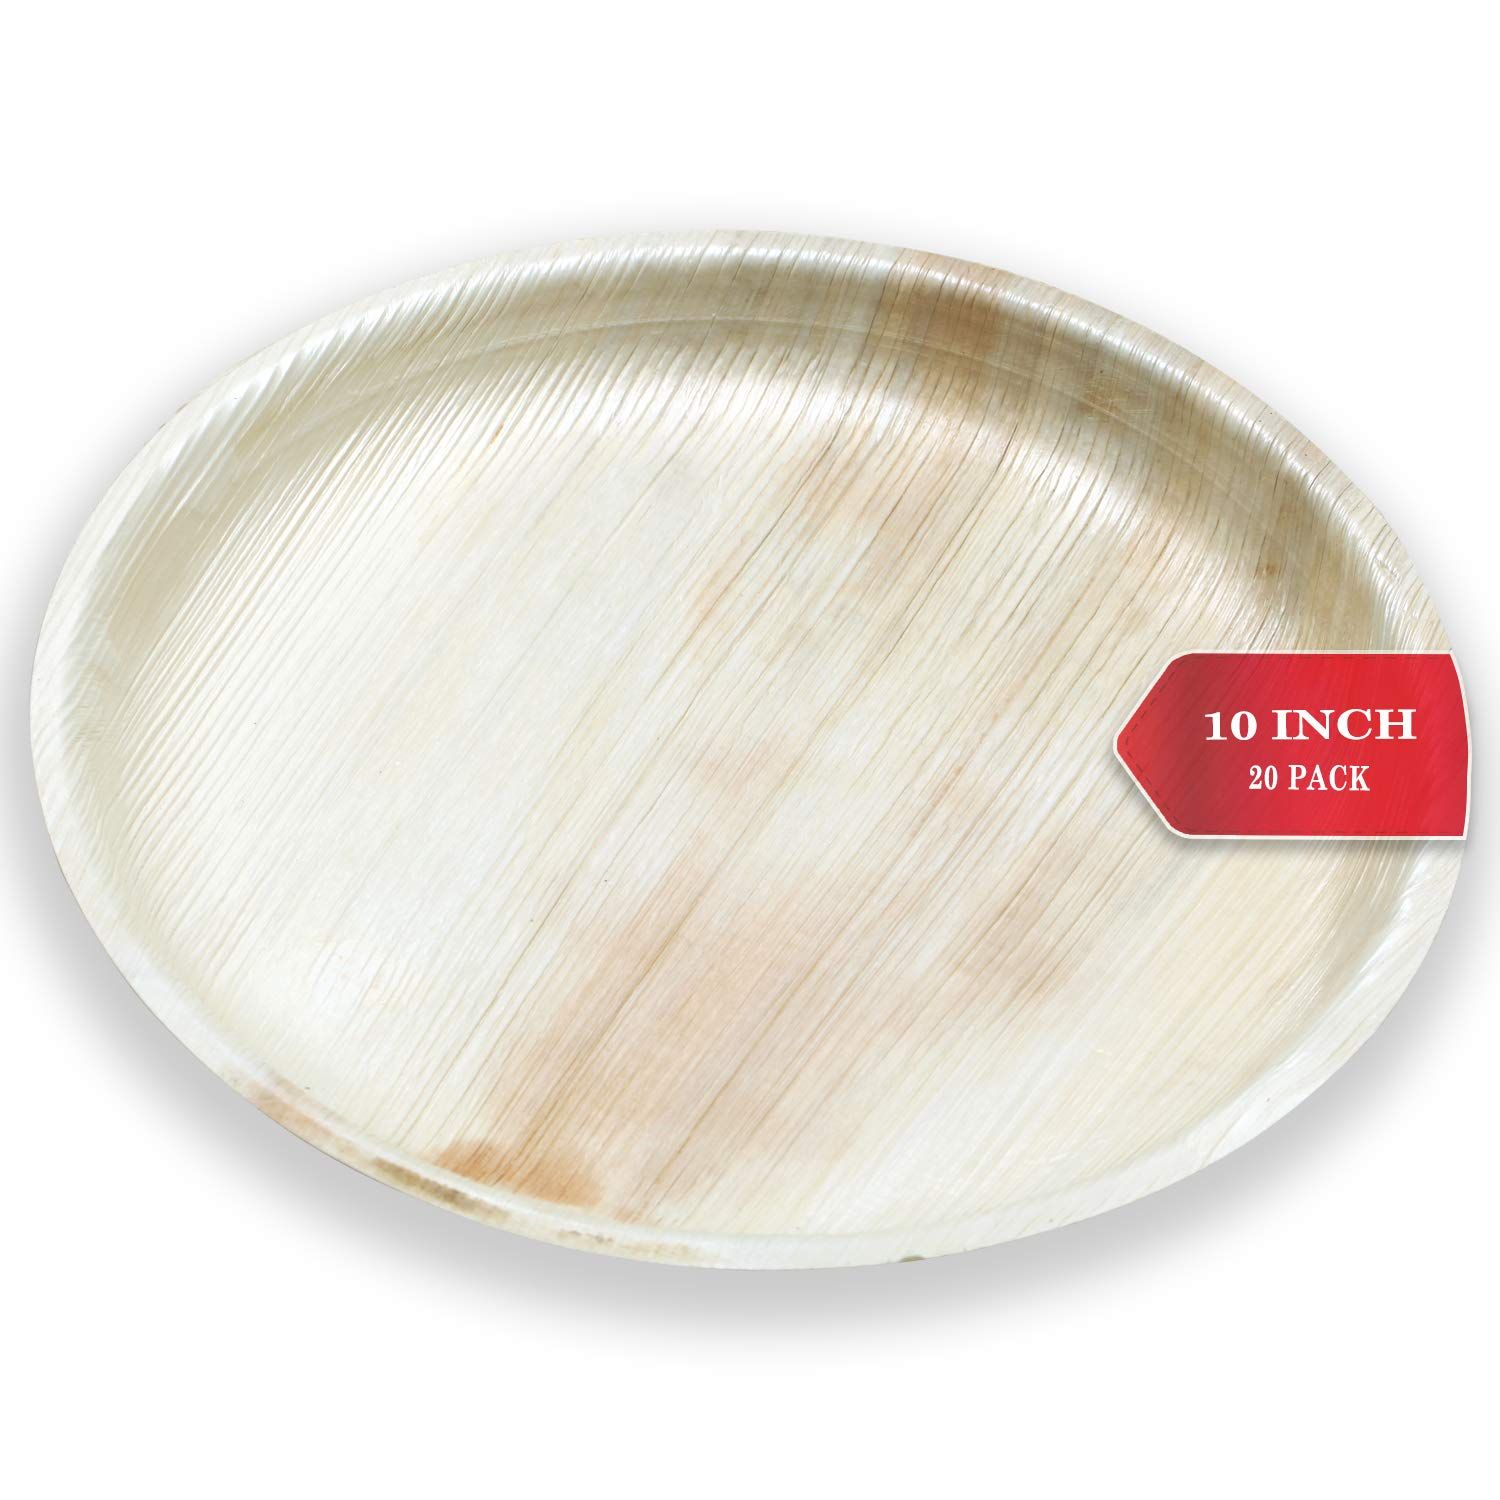 Terra Mirai Areca Palm leaf Plates - 10 Inch Round Shallow - Ecofriendly Disposable Dinnerware - Biodegradable & Premium Quality Round Plates - Ideal for Party, Wedding, BBQ, Camping & More by TERRA MIRAI